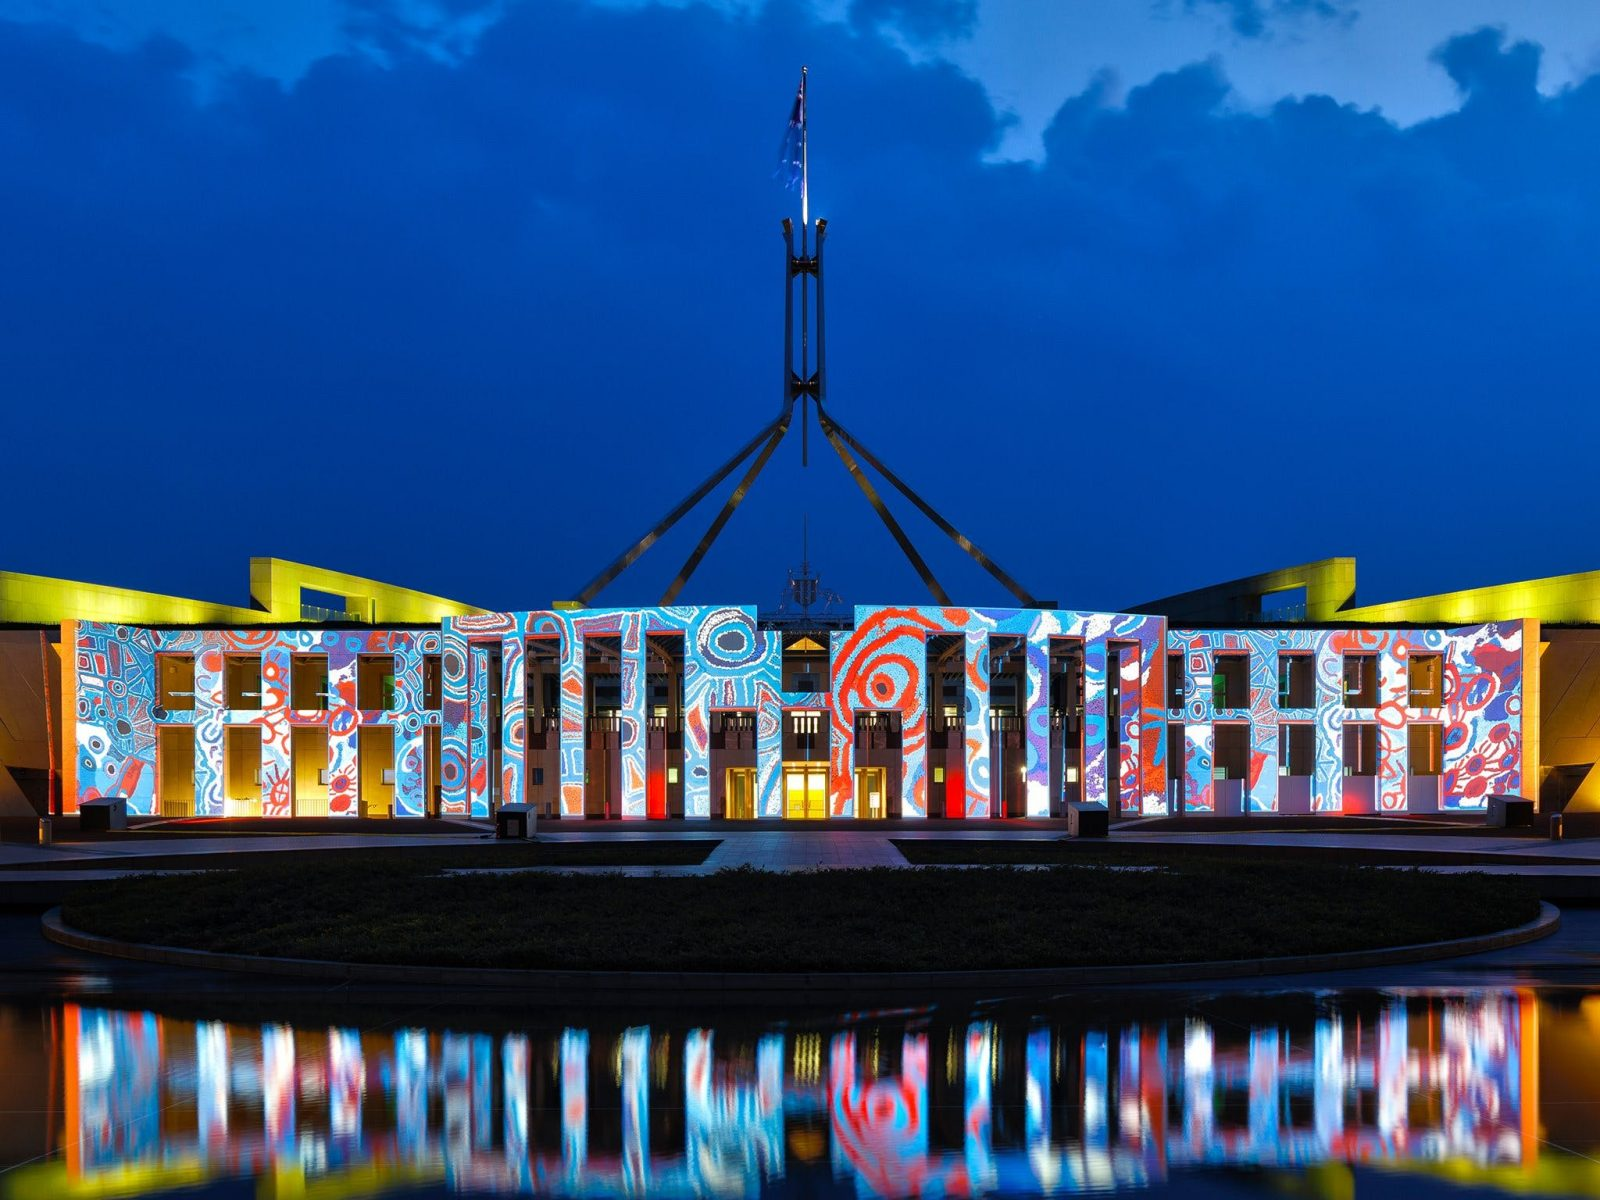 Architectural projections on Parliament House